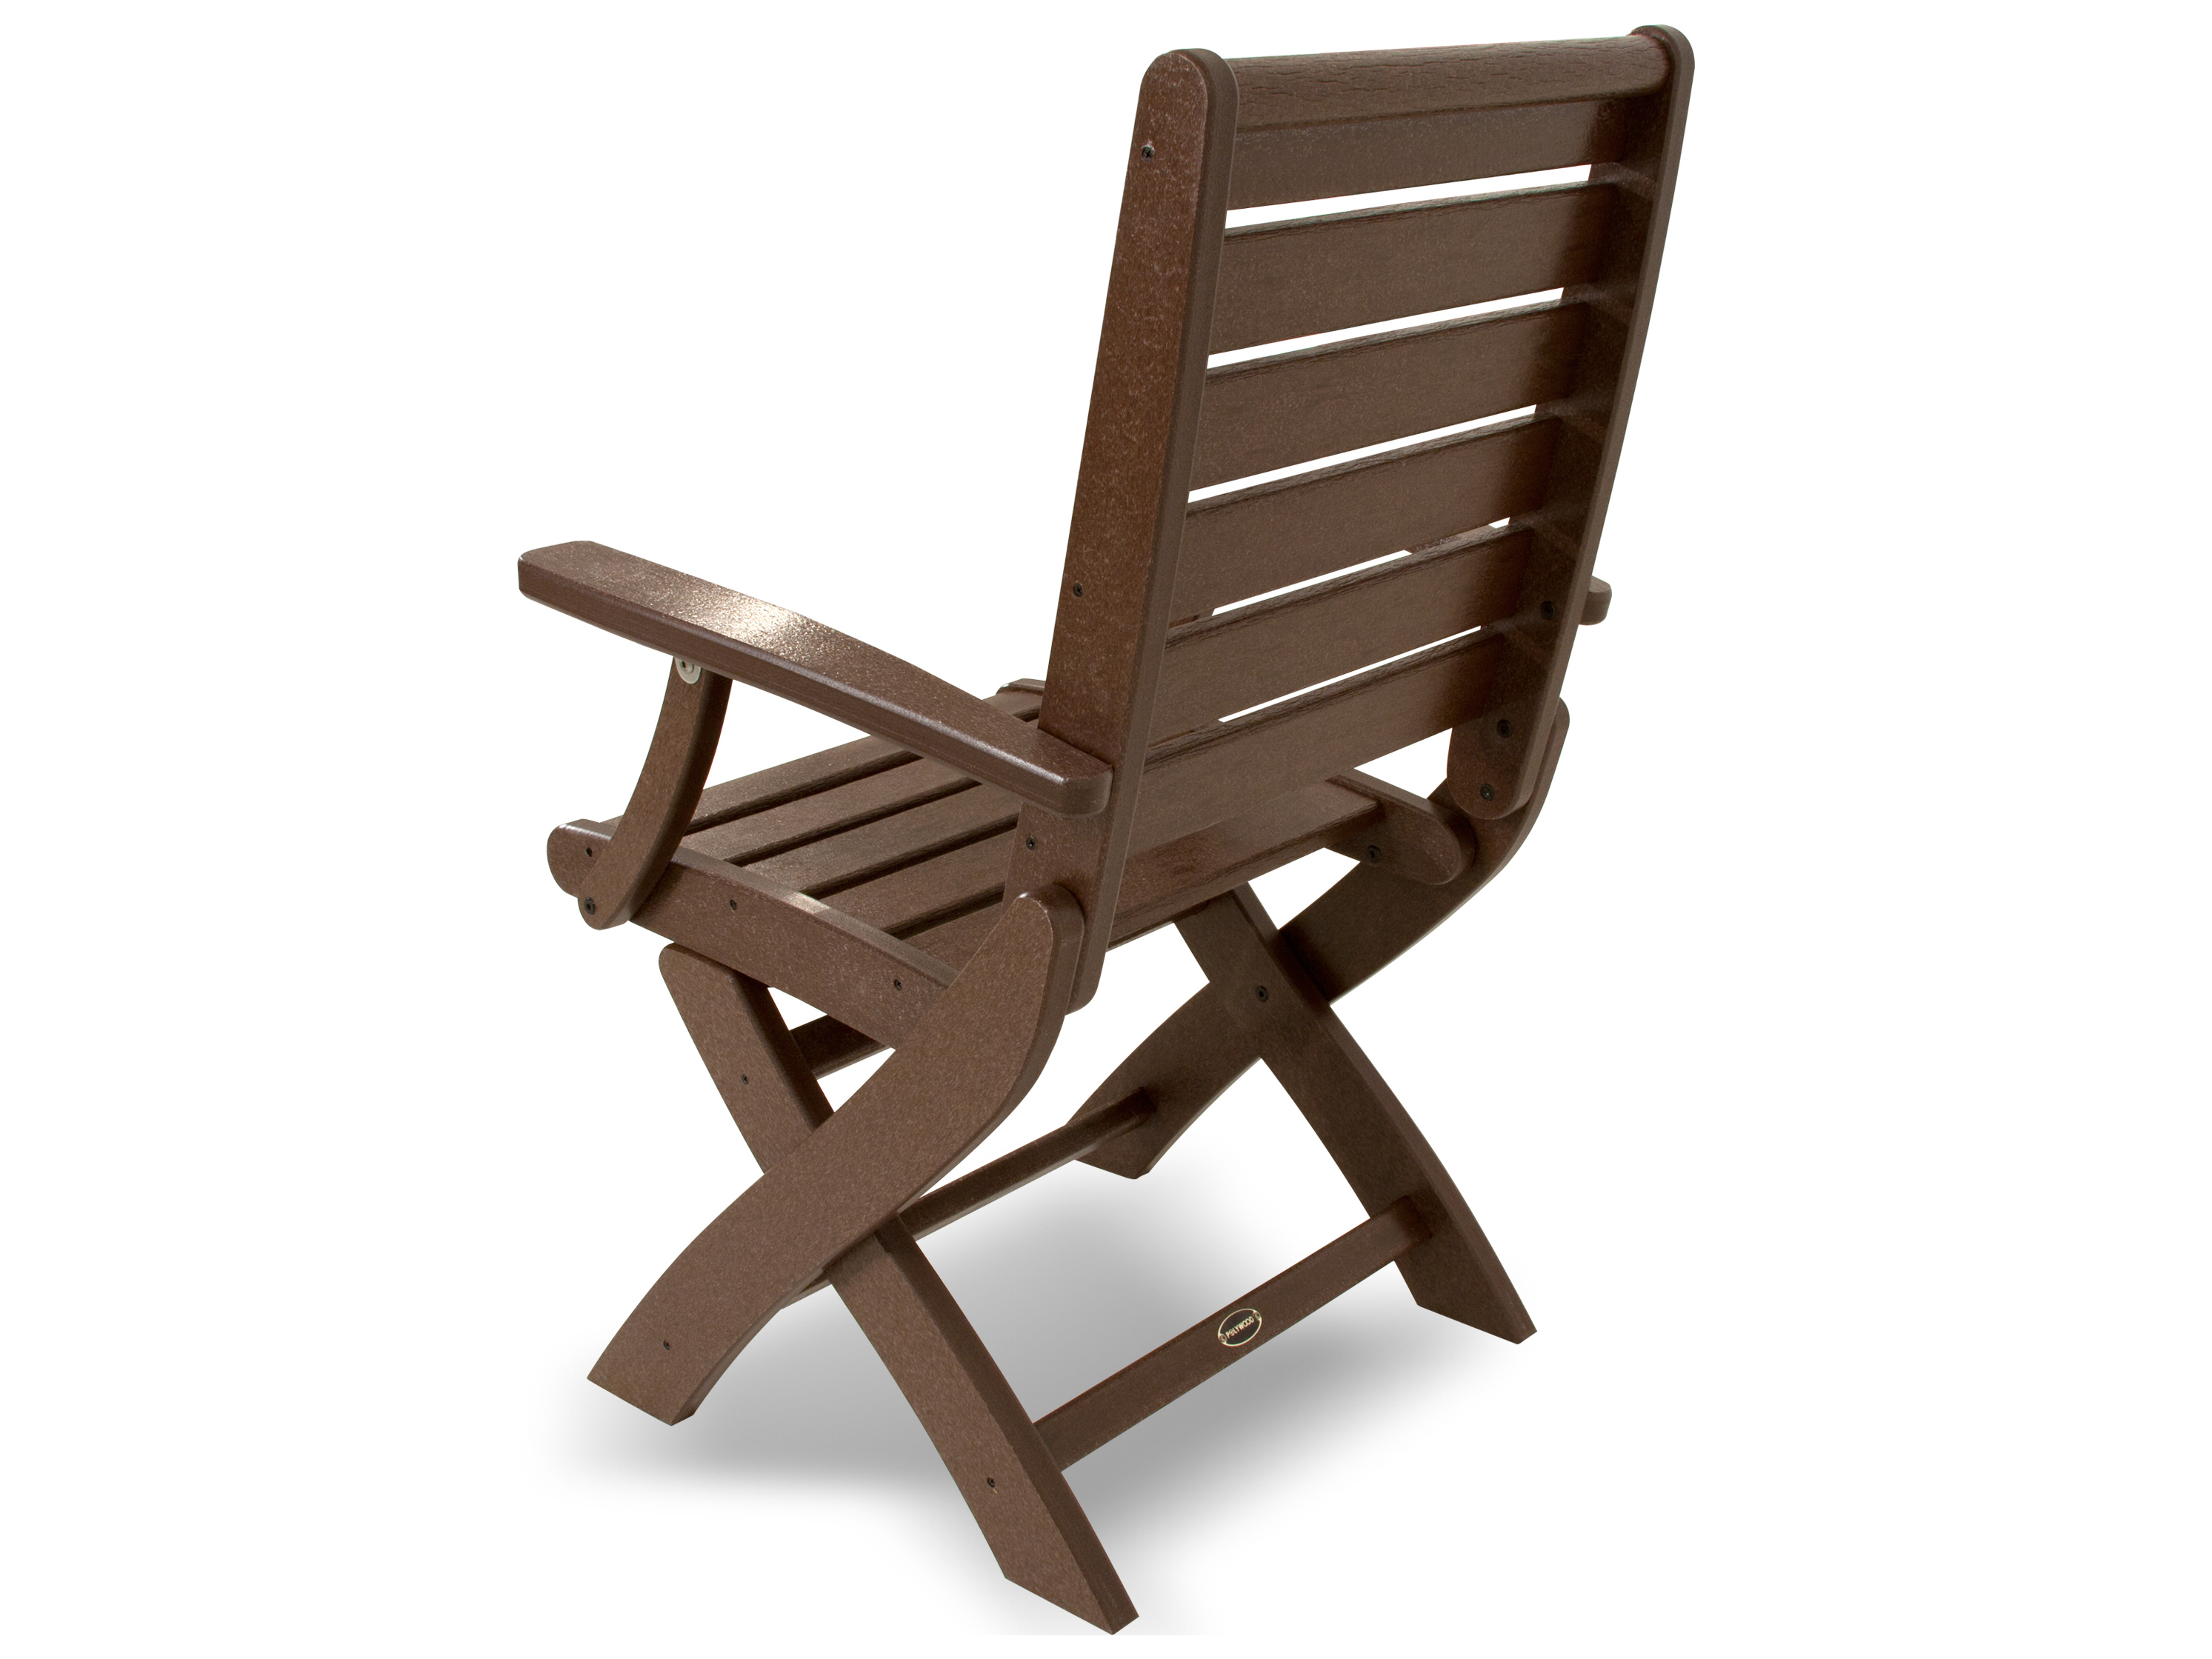 Plastic Folding Lawn Chairs Polywood Signature Recycled Plastic Folding Chair 1900